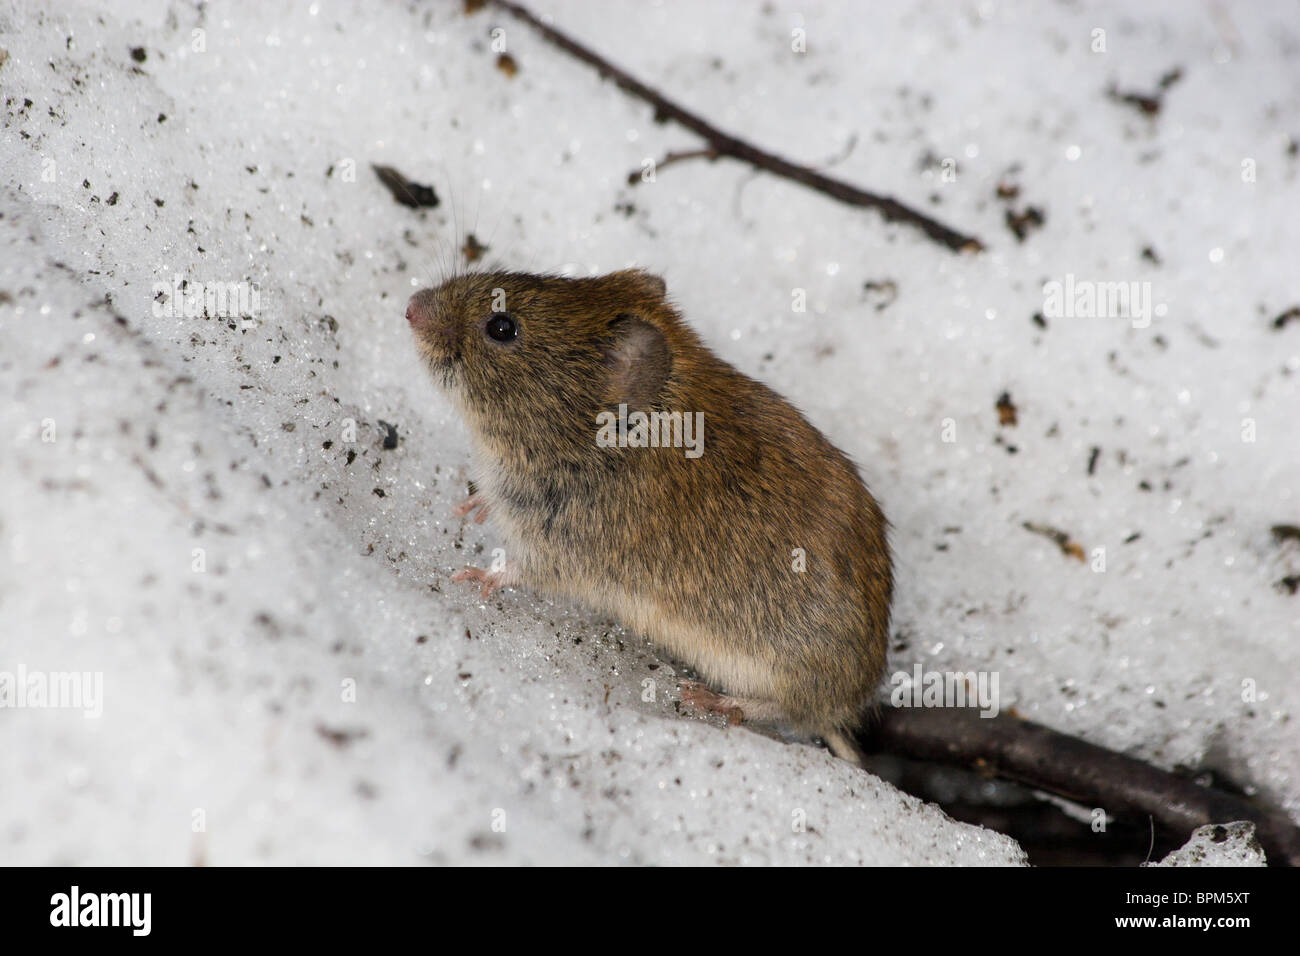 Clethrionomys glareolus, Bank Vole. Nice brown mouse on the earth. A wildlife photo. - Stock Image